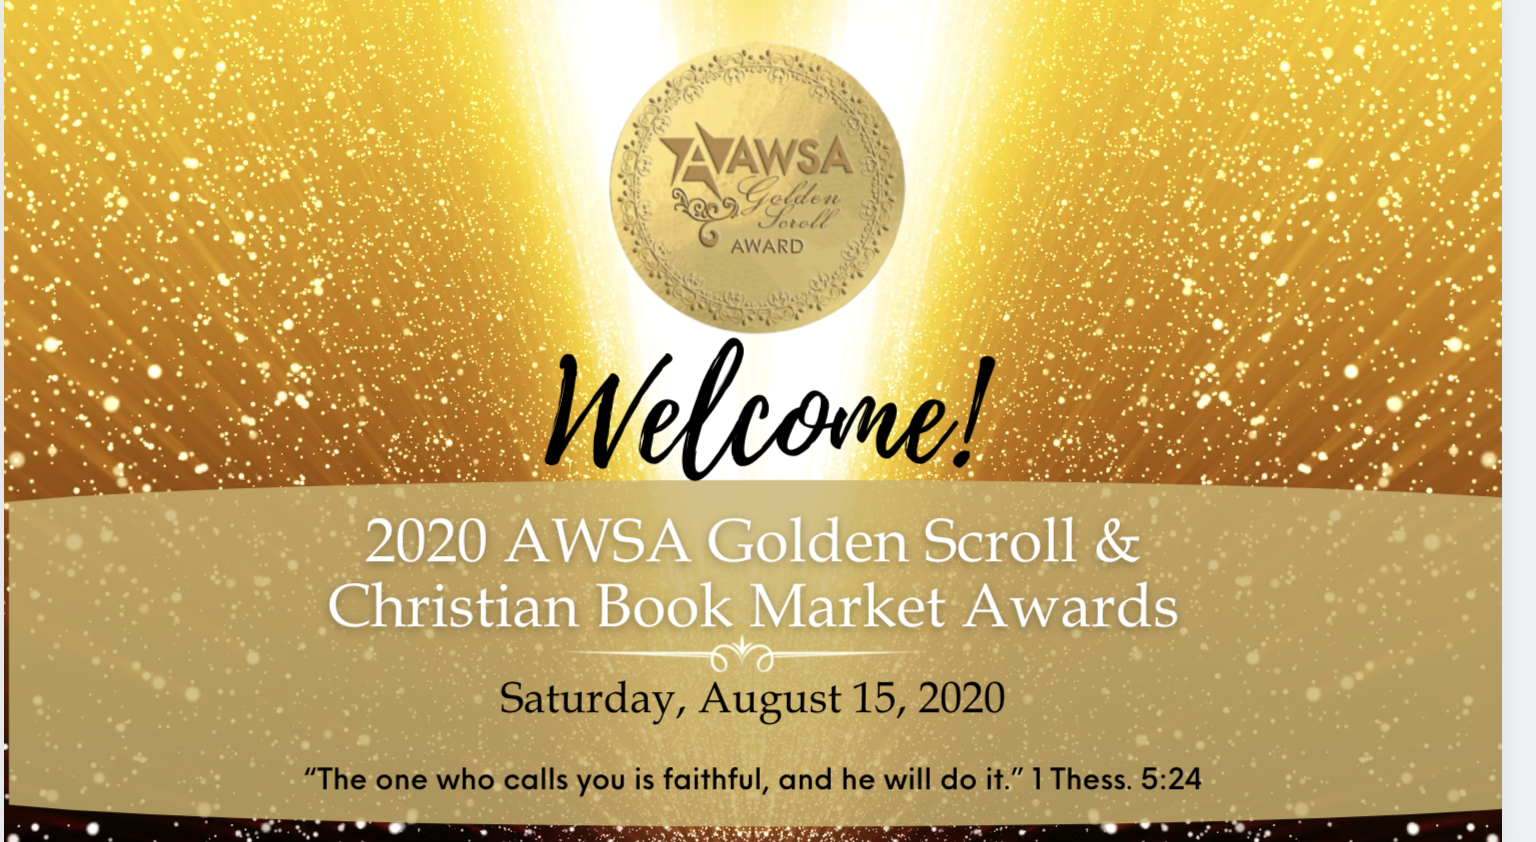 AWSA announces the 2020 Golden Scroll and Christian Market Book Award winners